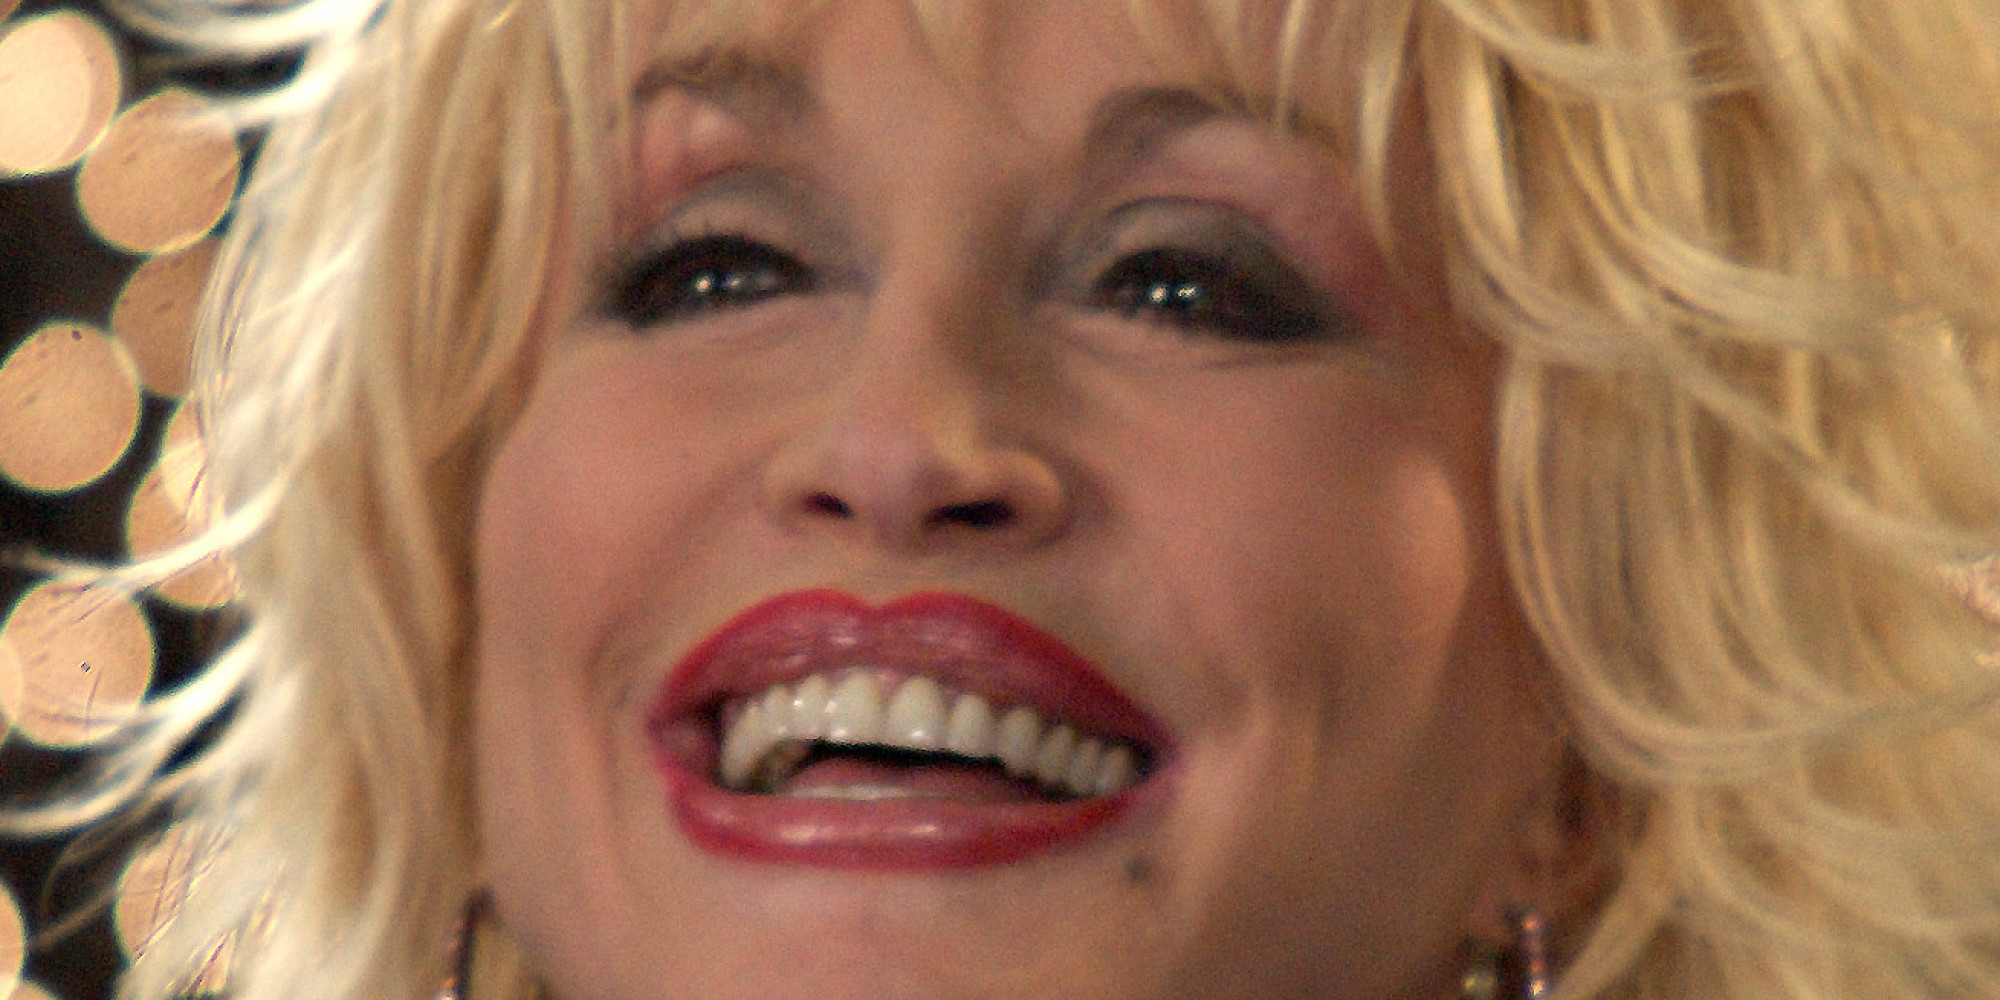 Dolly Parton Chastises Christians For 'Judging' LGBT Community